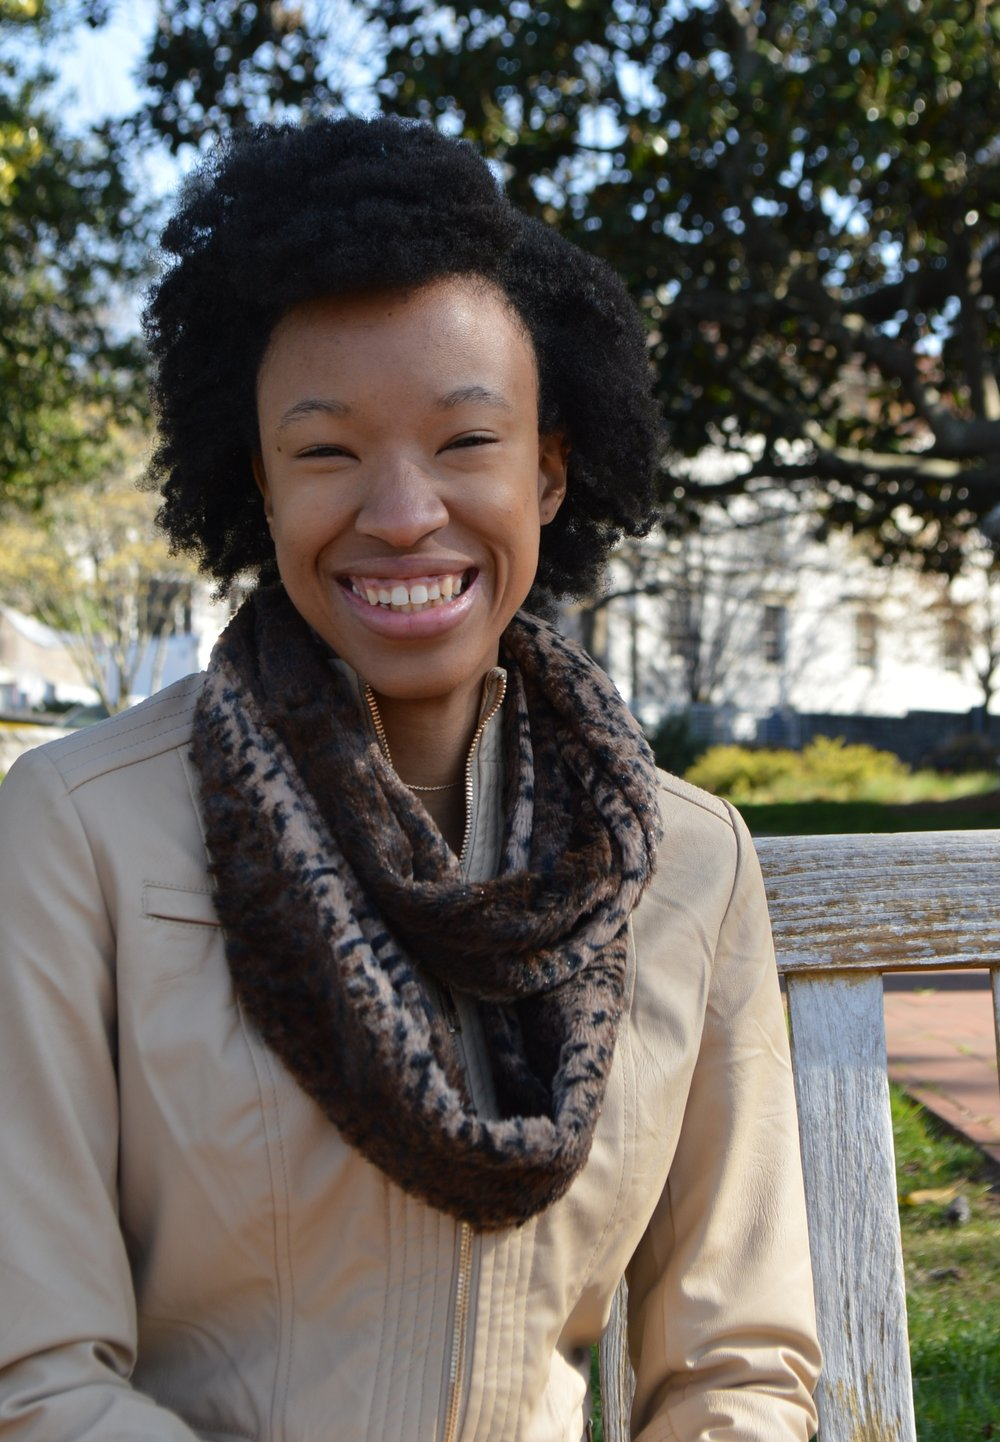 CBSC IN ATLANTA - Caroline Nwanze, 2017 CBSC Fellow, has been selected for the two year Woodruff and Whitehead Foundations' Fellowship.Caroline will work within the foundations for two years after graduation in May, learning about the foundations' work and better understanding the important role of philanthropy in our most pressing community needs.